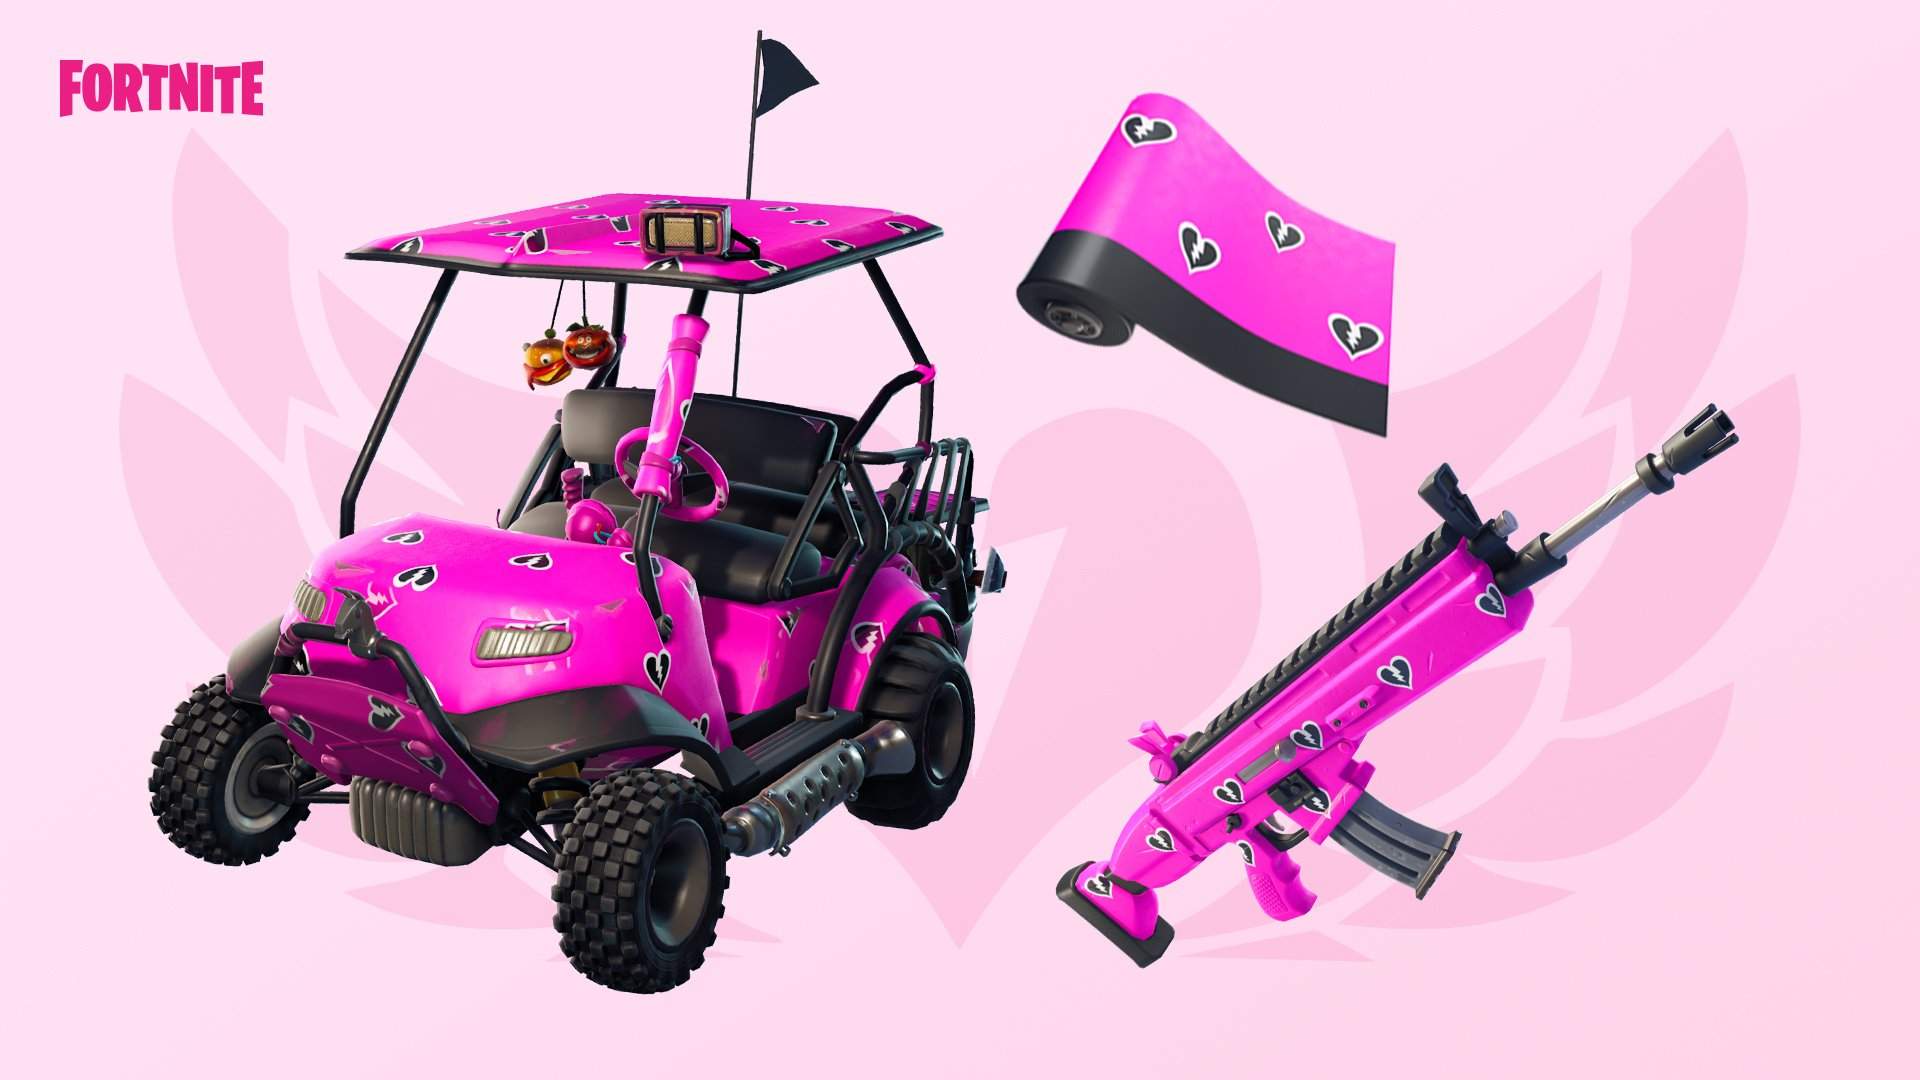 New Valetine Wraps are coming to Fortnite